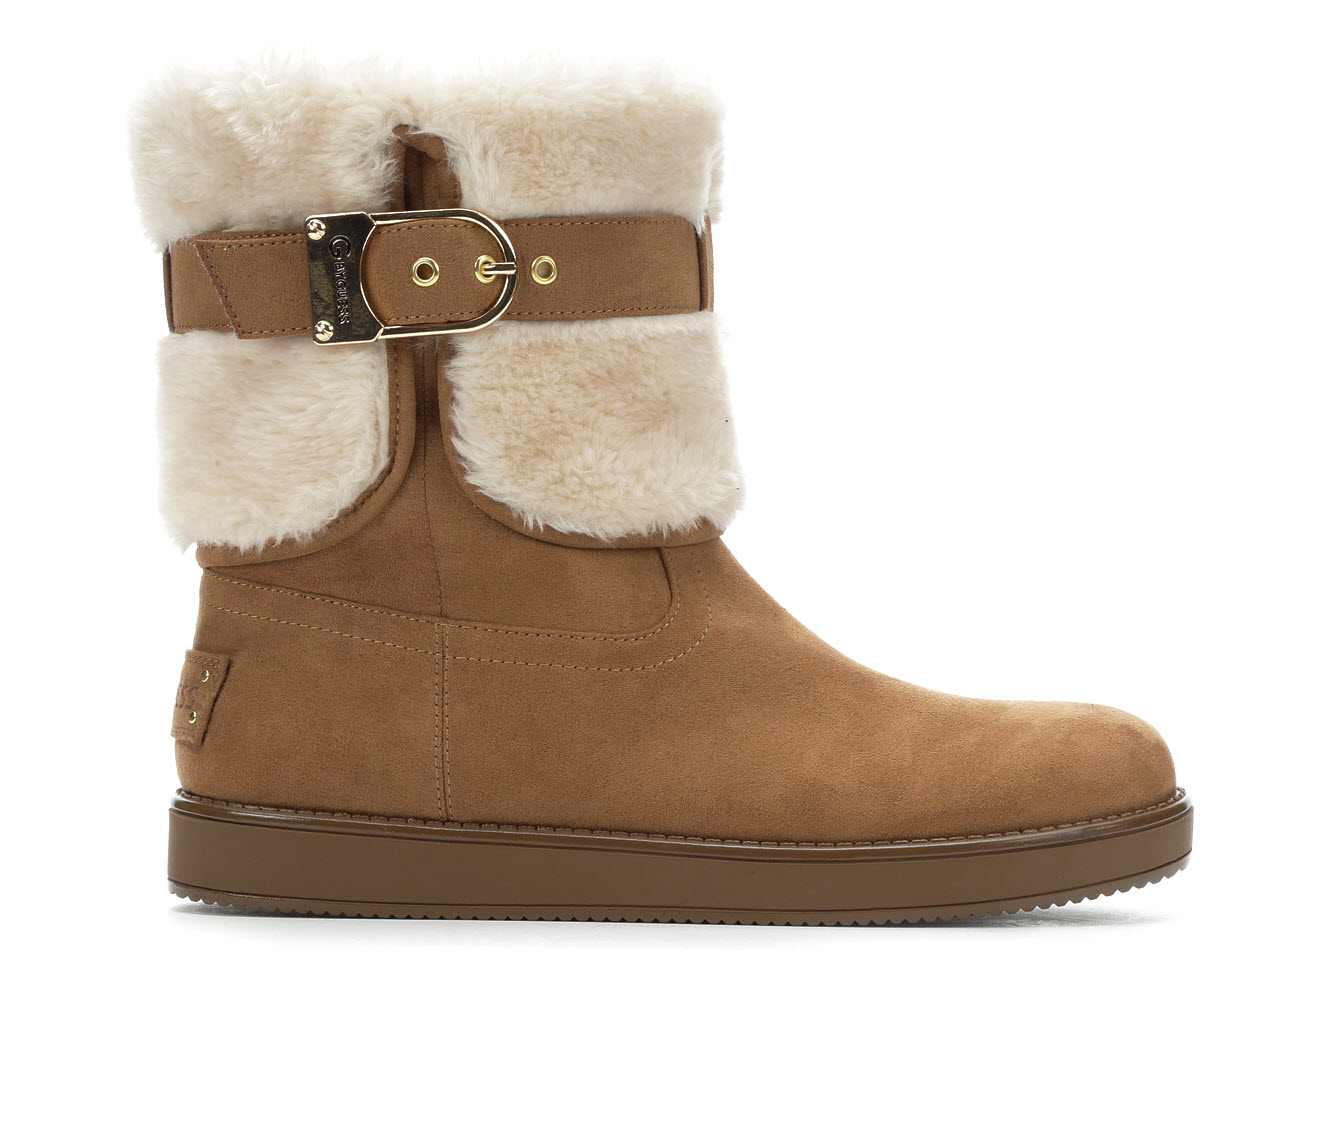 G By Guess Aussie Women's Boots (Brown - Canvas)